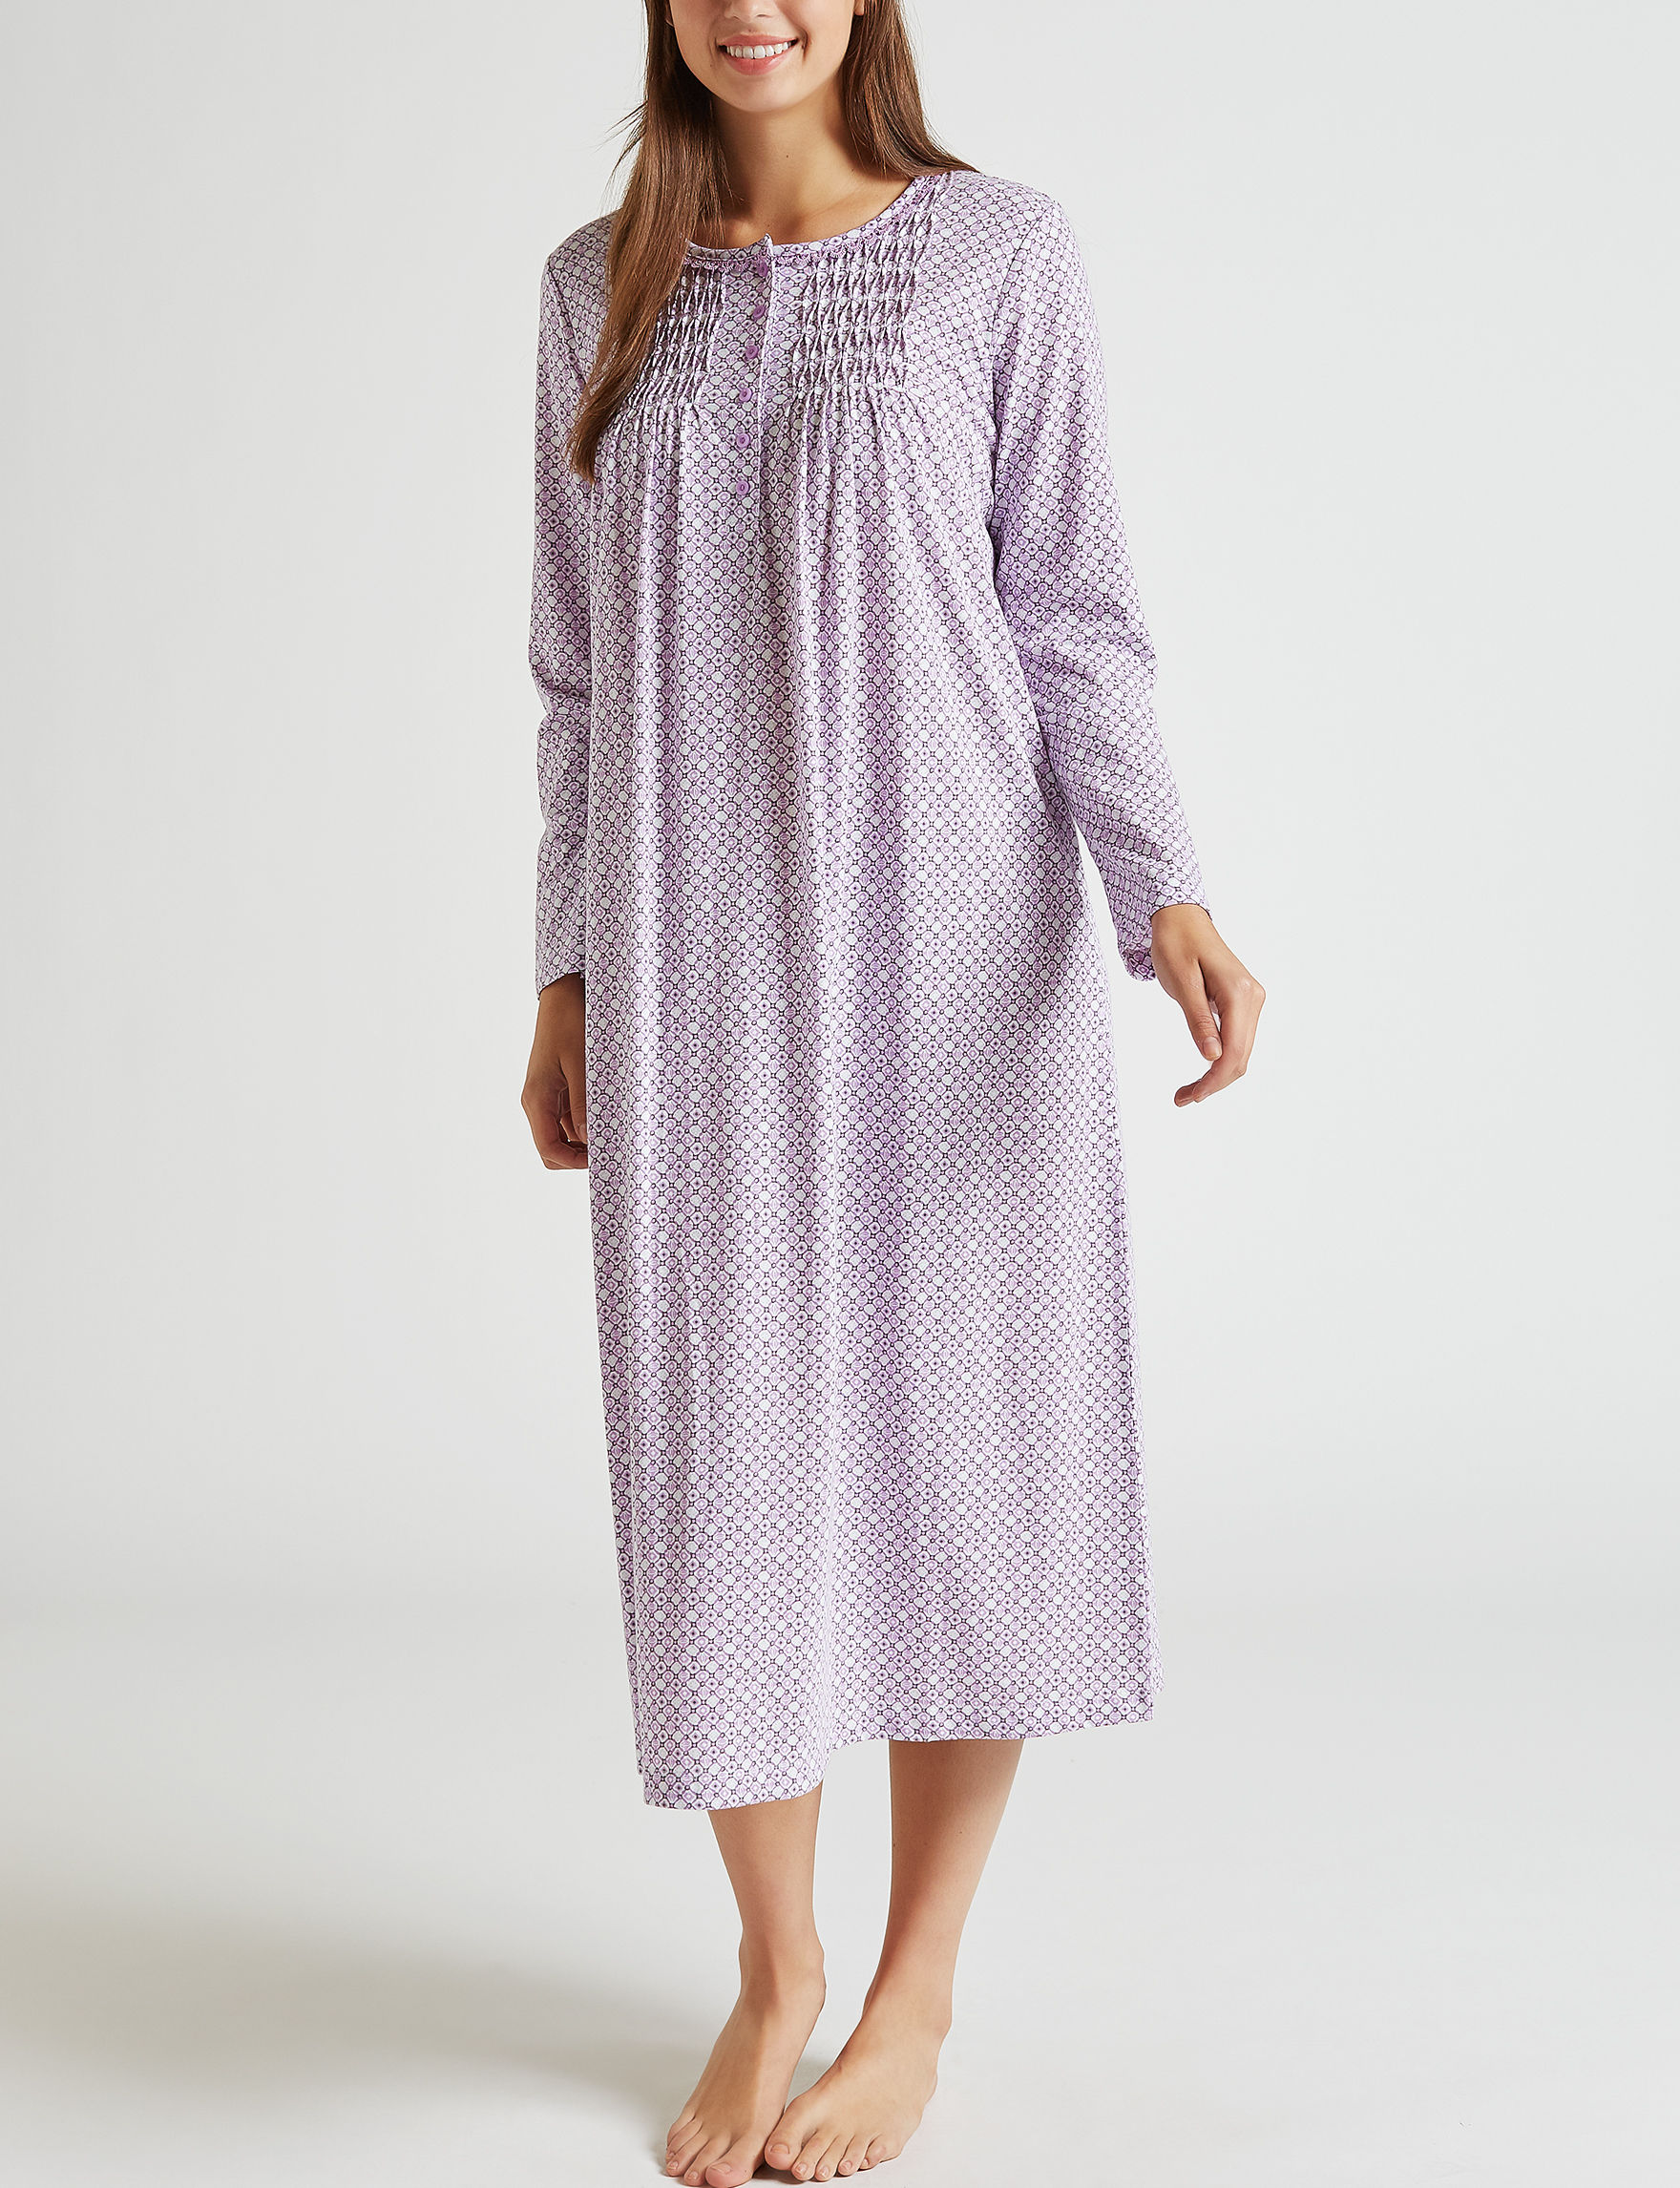 Rebecca Malone Pink Multi Nightgowns & Sleep Shirts